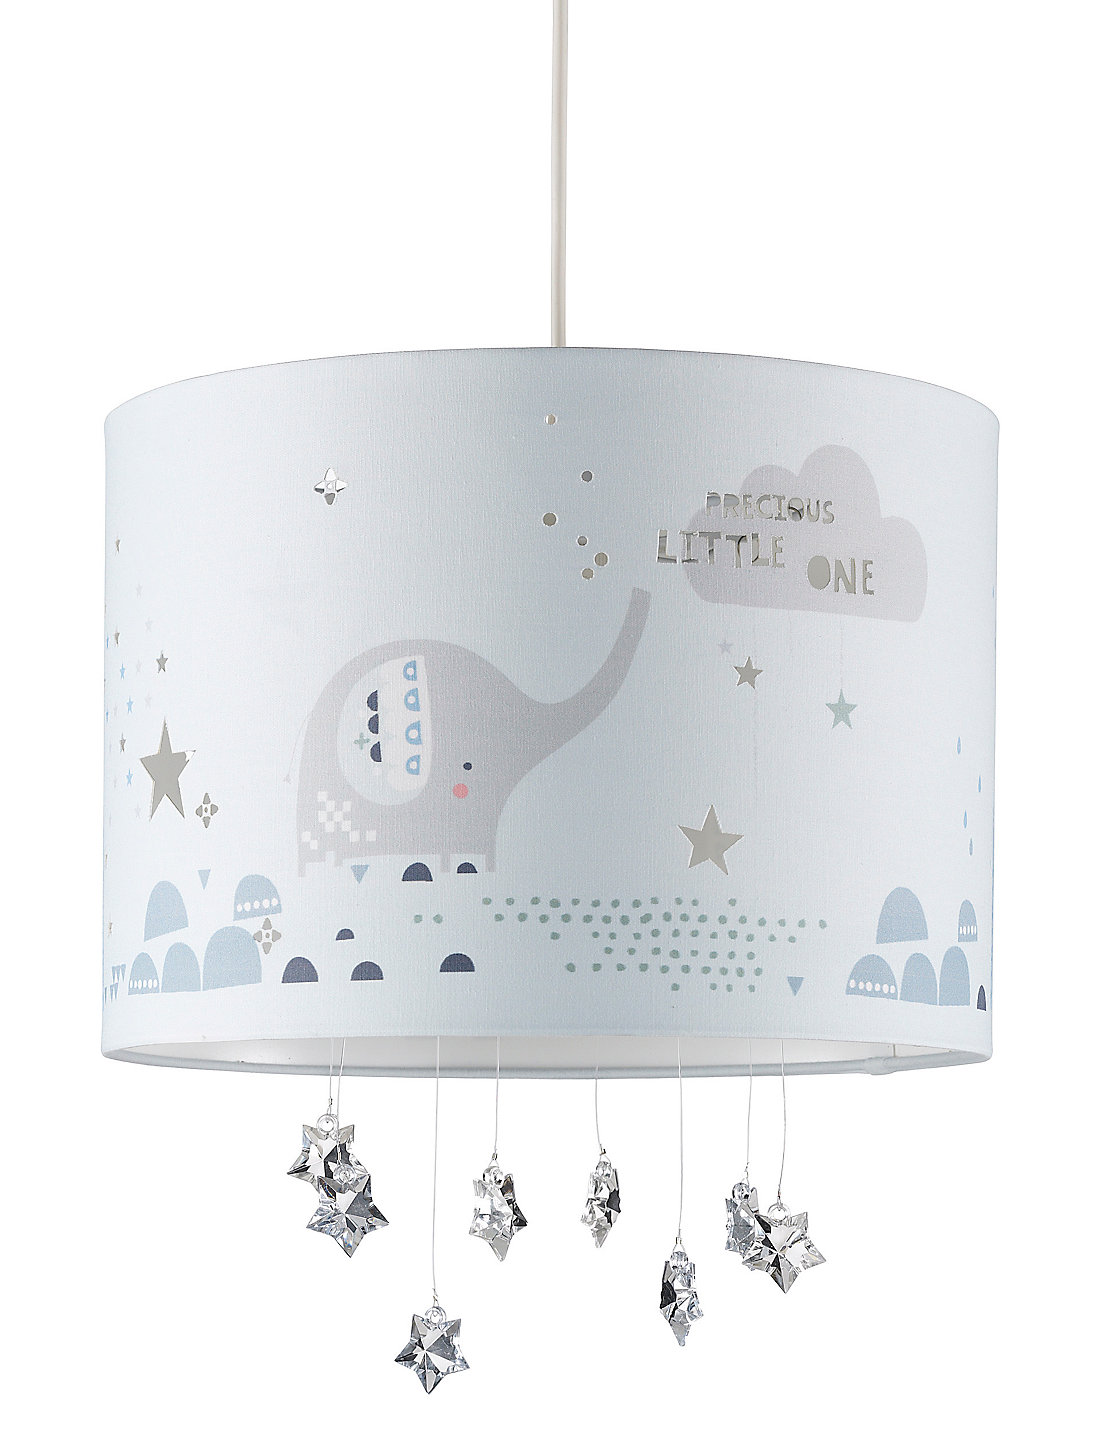 Baby nursery lamp shades thenurseries lamp shade for baby nursery thenurseries aloadofball Images